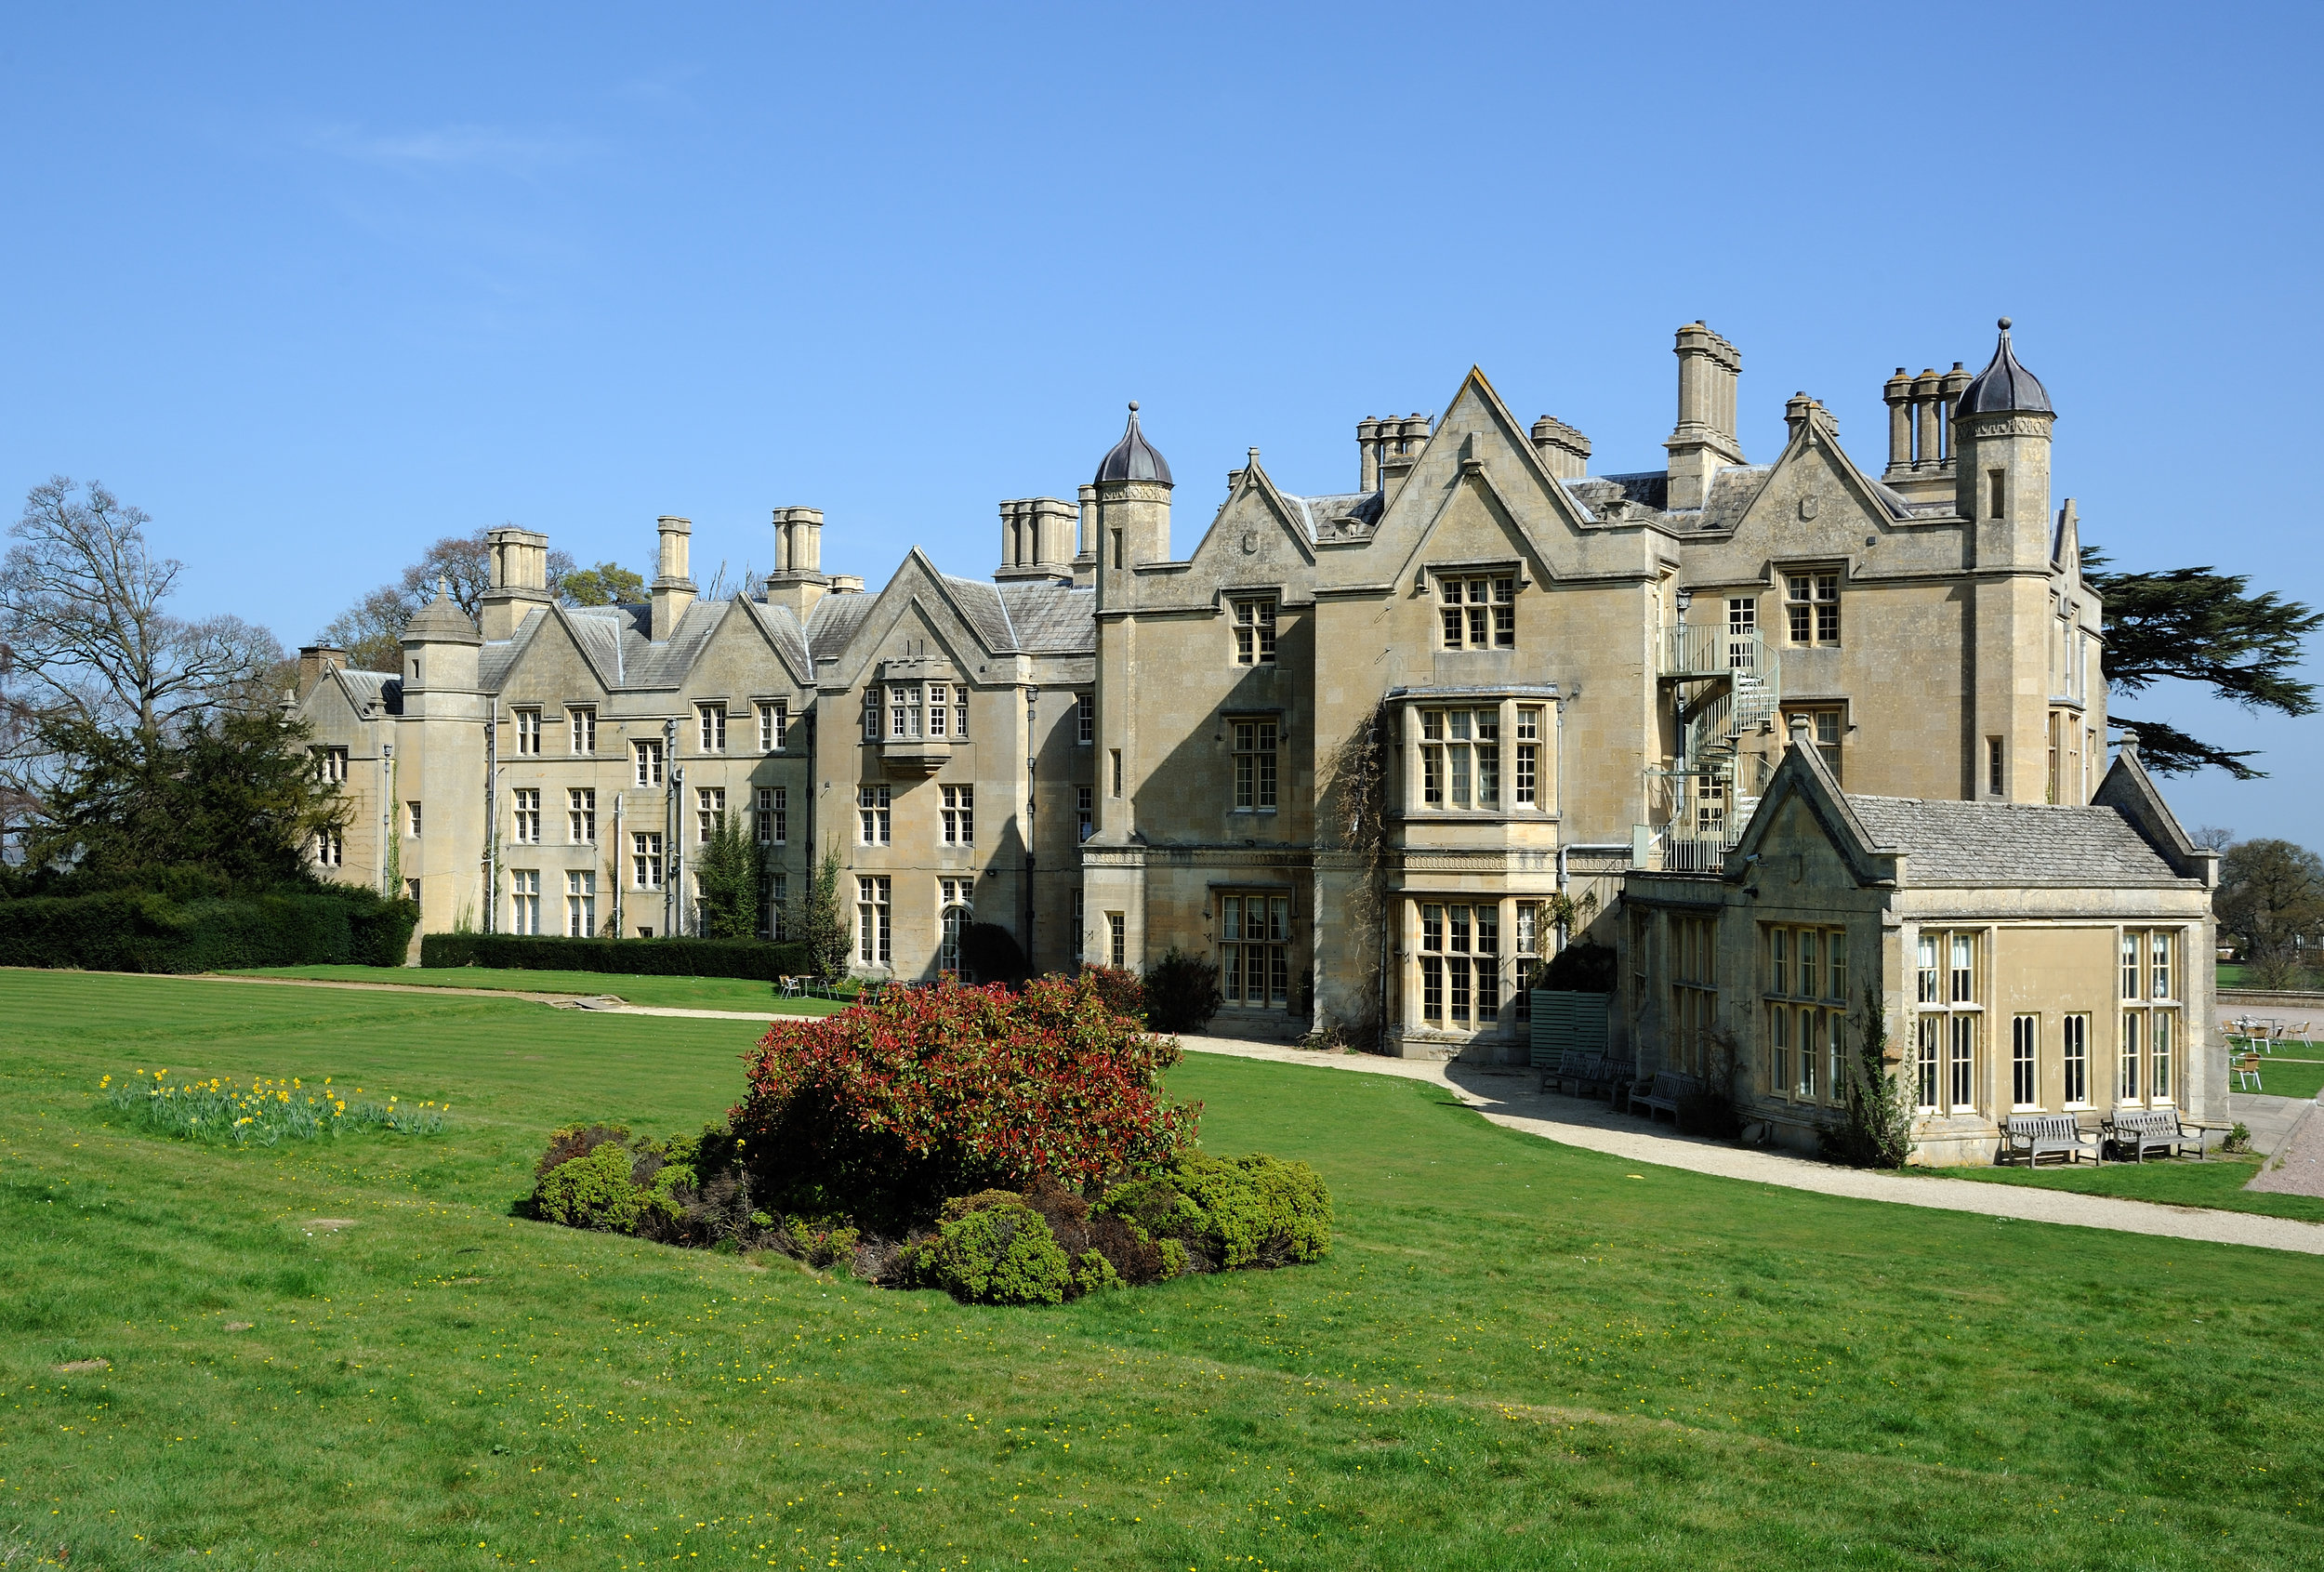 Dumbleton Hall - Dumbleton Hall is a traditional Cotswold Manor House, with a classical interior, and set in 19 acres of beautiful gardens - a gorgeous traditional wedding venue.www.dumbletonhall.co.ukDumbleton, Nr Evesham, Worcestershire, WR11 7TS